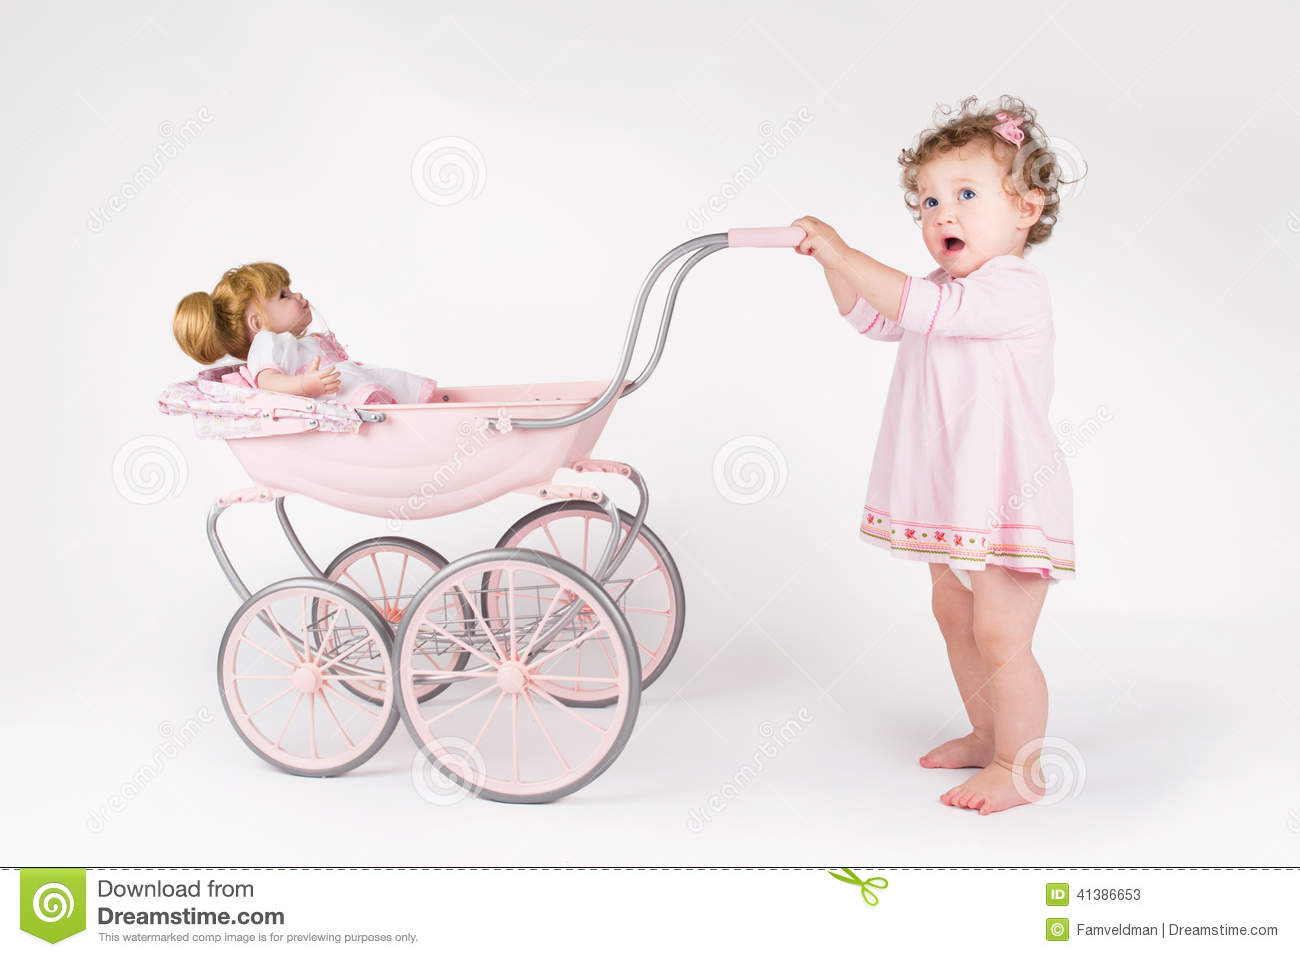 Funny baby girl walking with a doll stroller